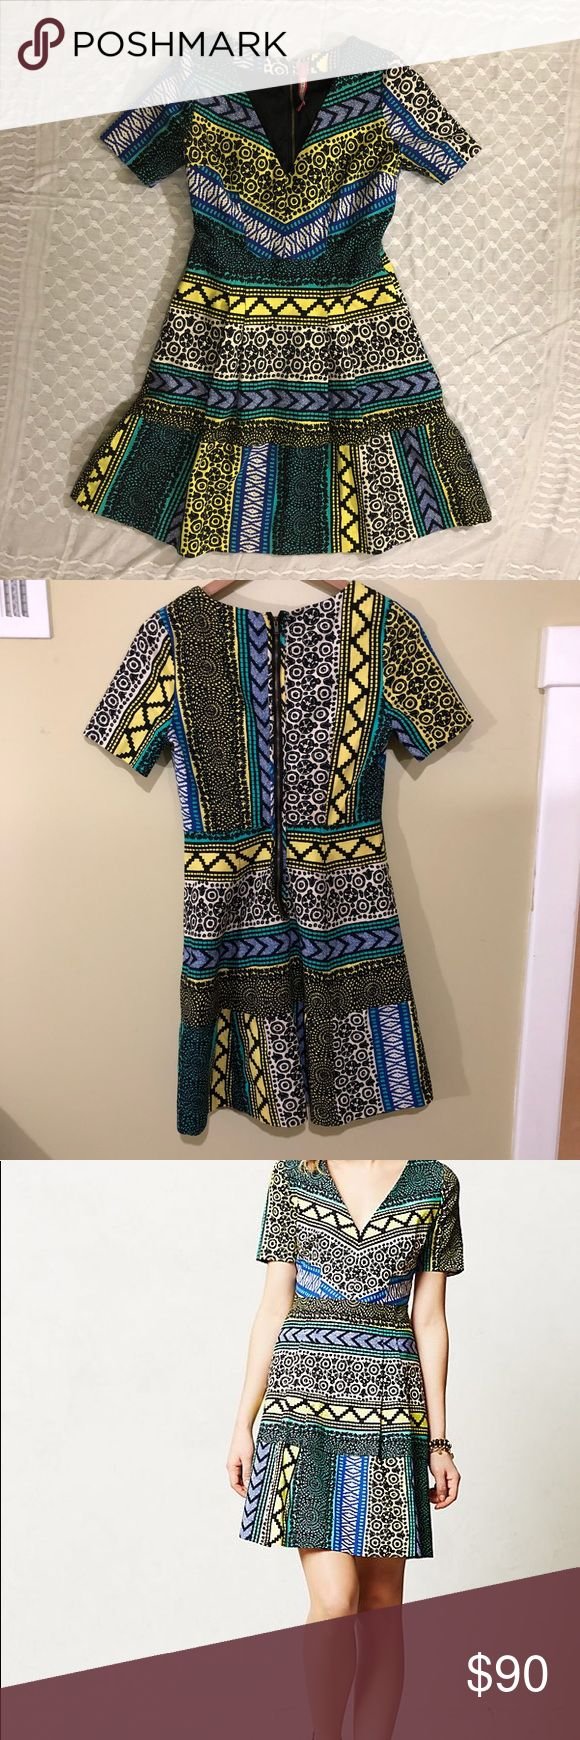 Anthropologie Plenty by Tracy Reese New Moon Dress Vibrant Anthropologie dress - Plenty by Tracy Reese.  This dress is so flattering and extremely well made. EUC. Anthropologie Dresses